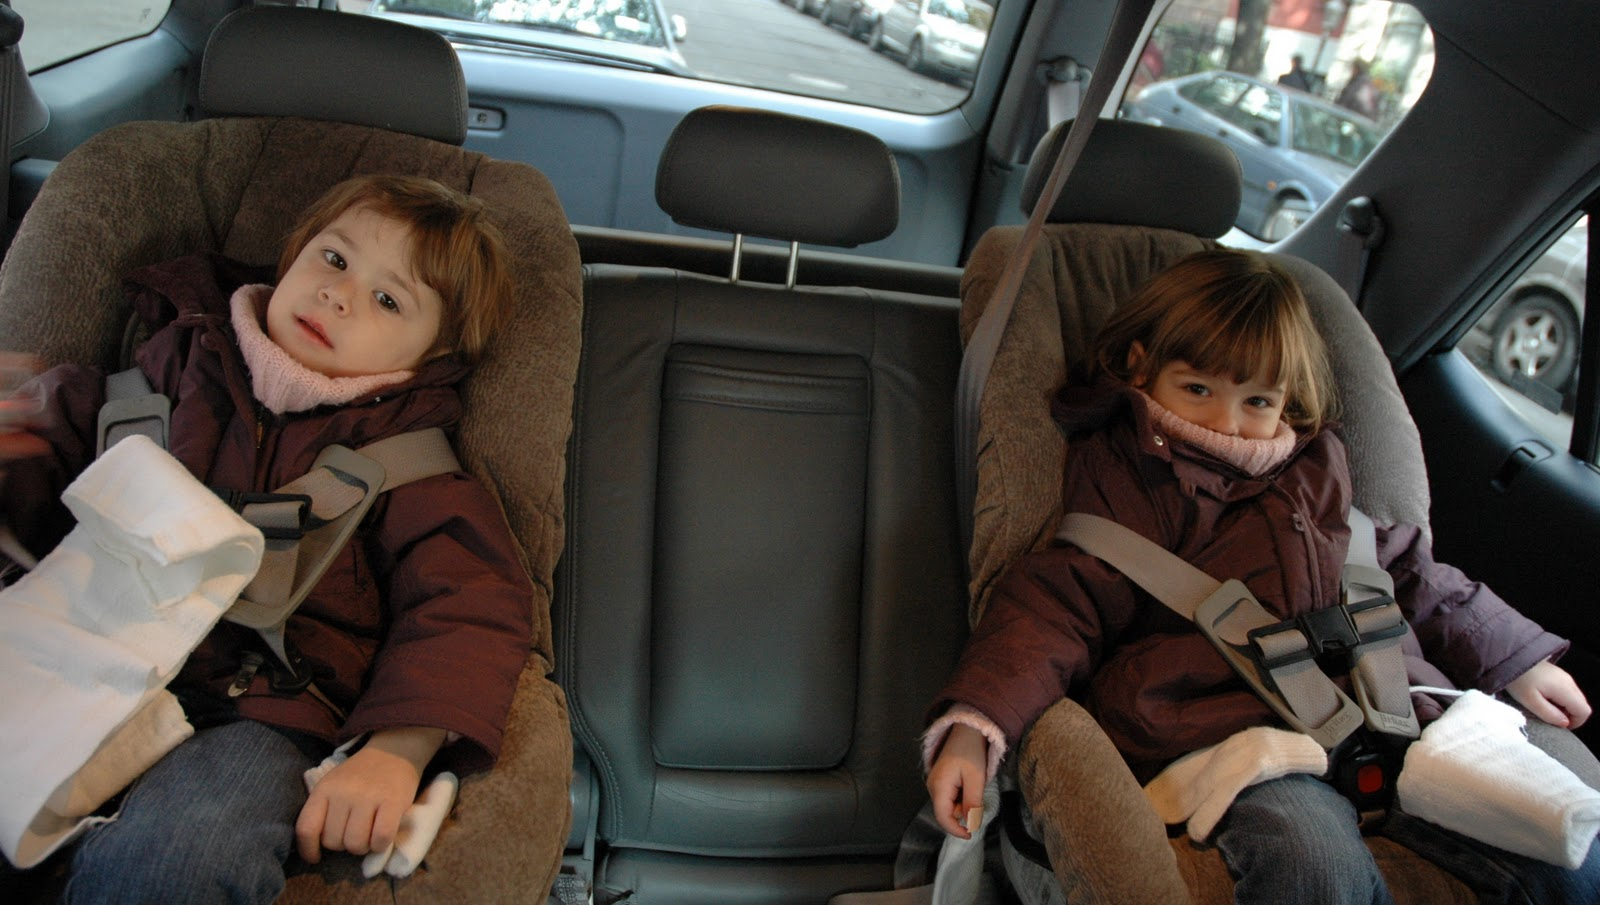 6 Items That Can Render Your Baby's Car Seat Deadly